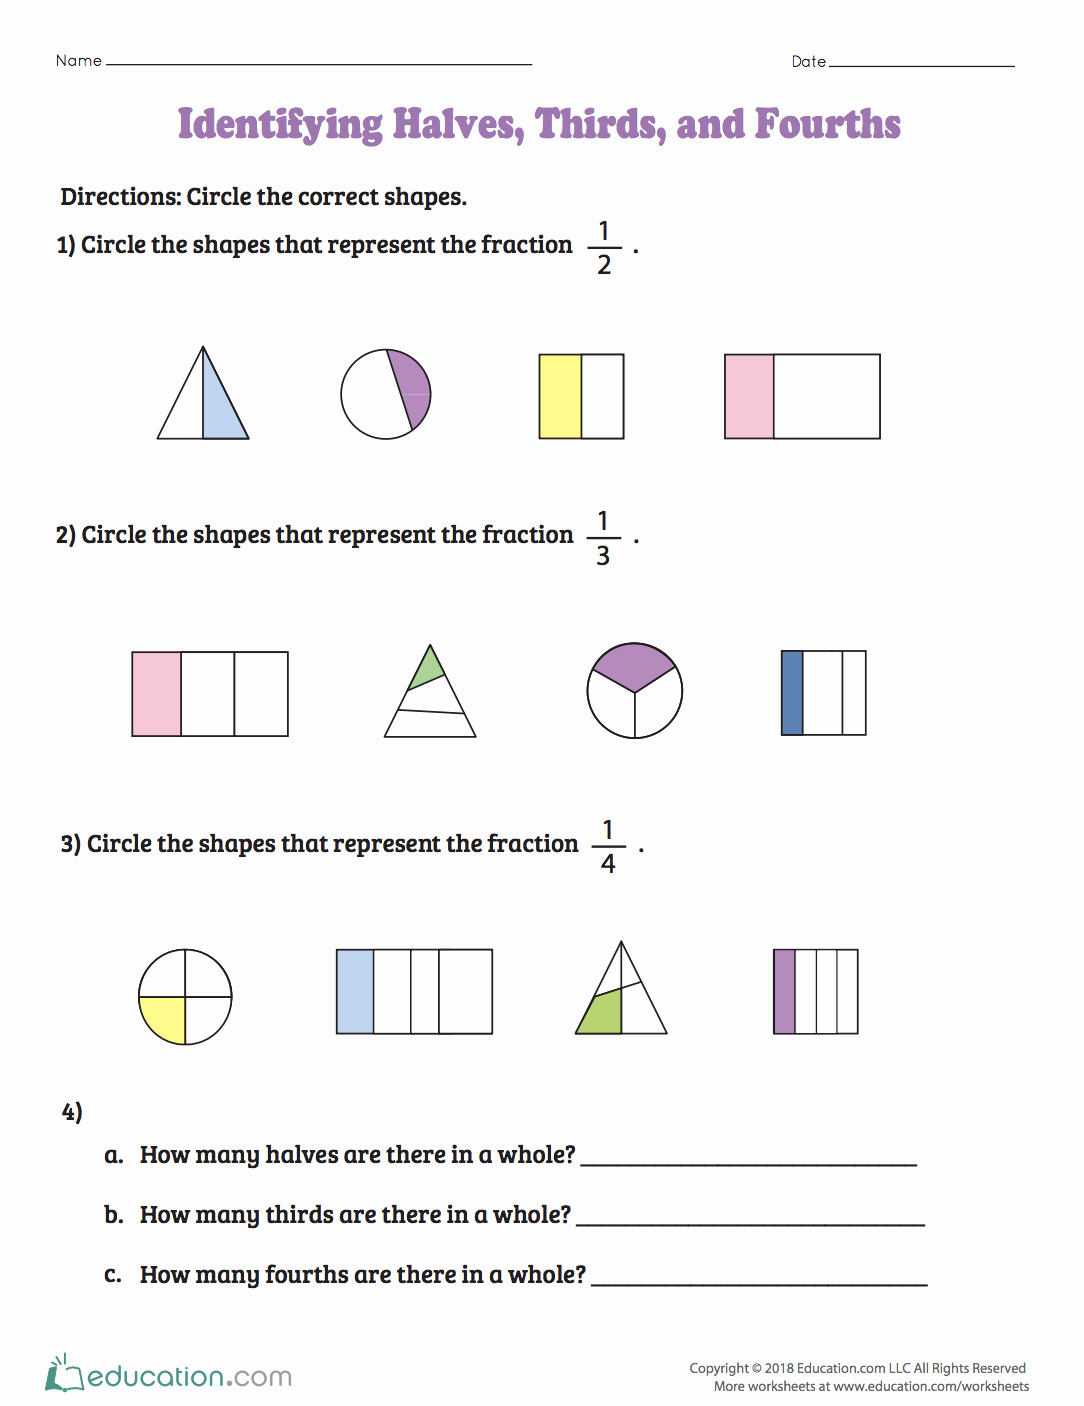 2nd Grade Fractions Worksheet Inspirational Identifying Halves Thirds and Fourths